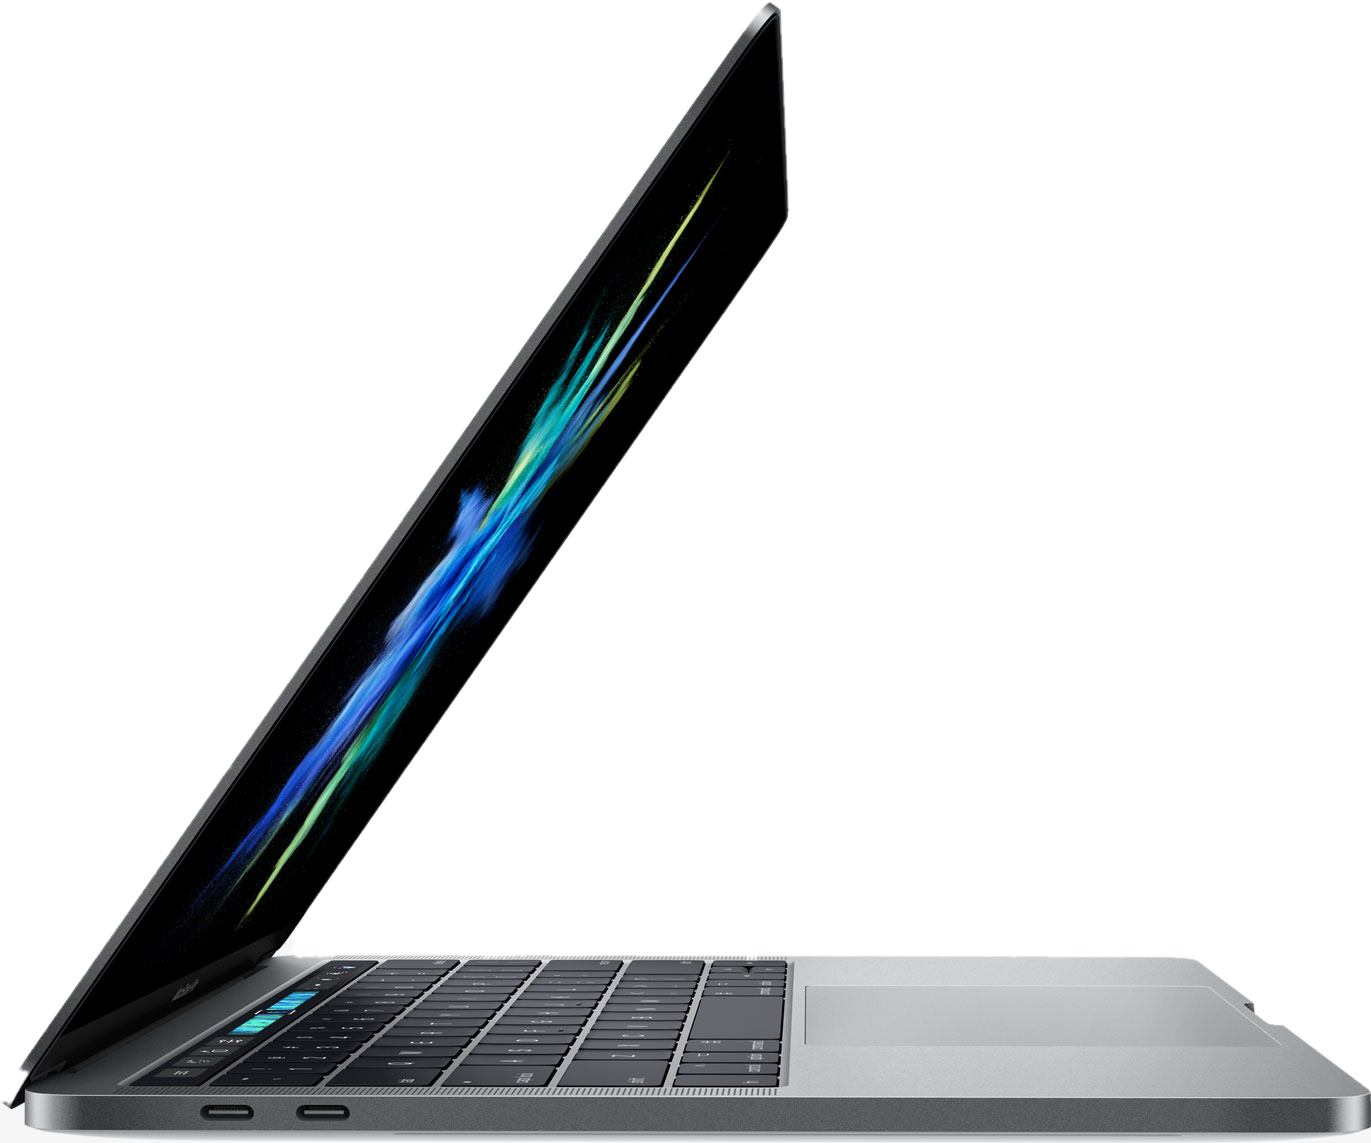 Apple Macbook Pro Retina, Эппл Макбук Про Ретина